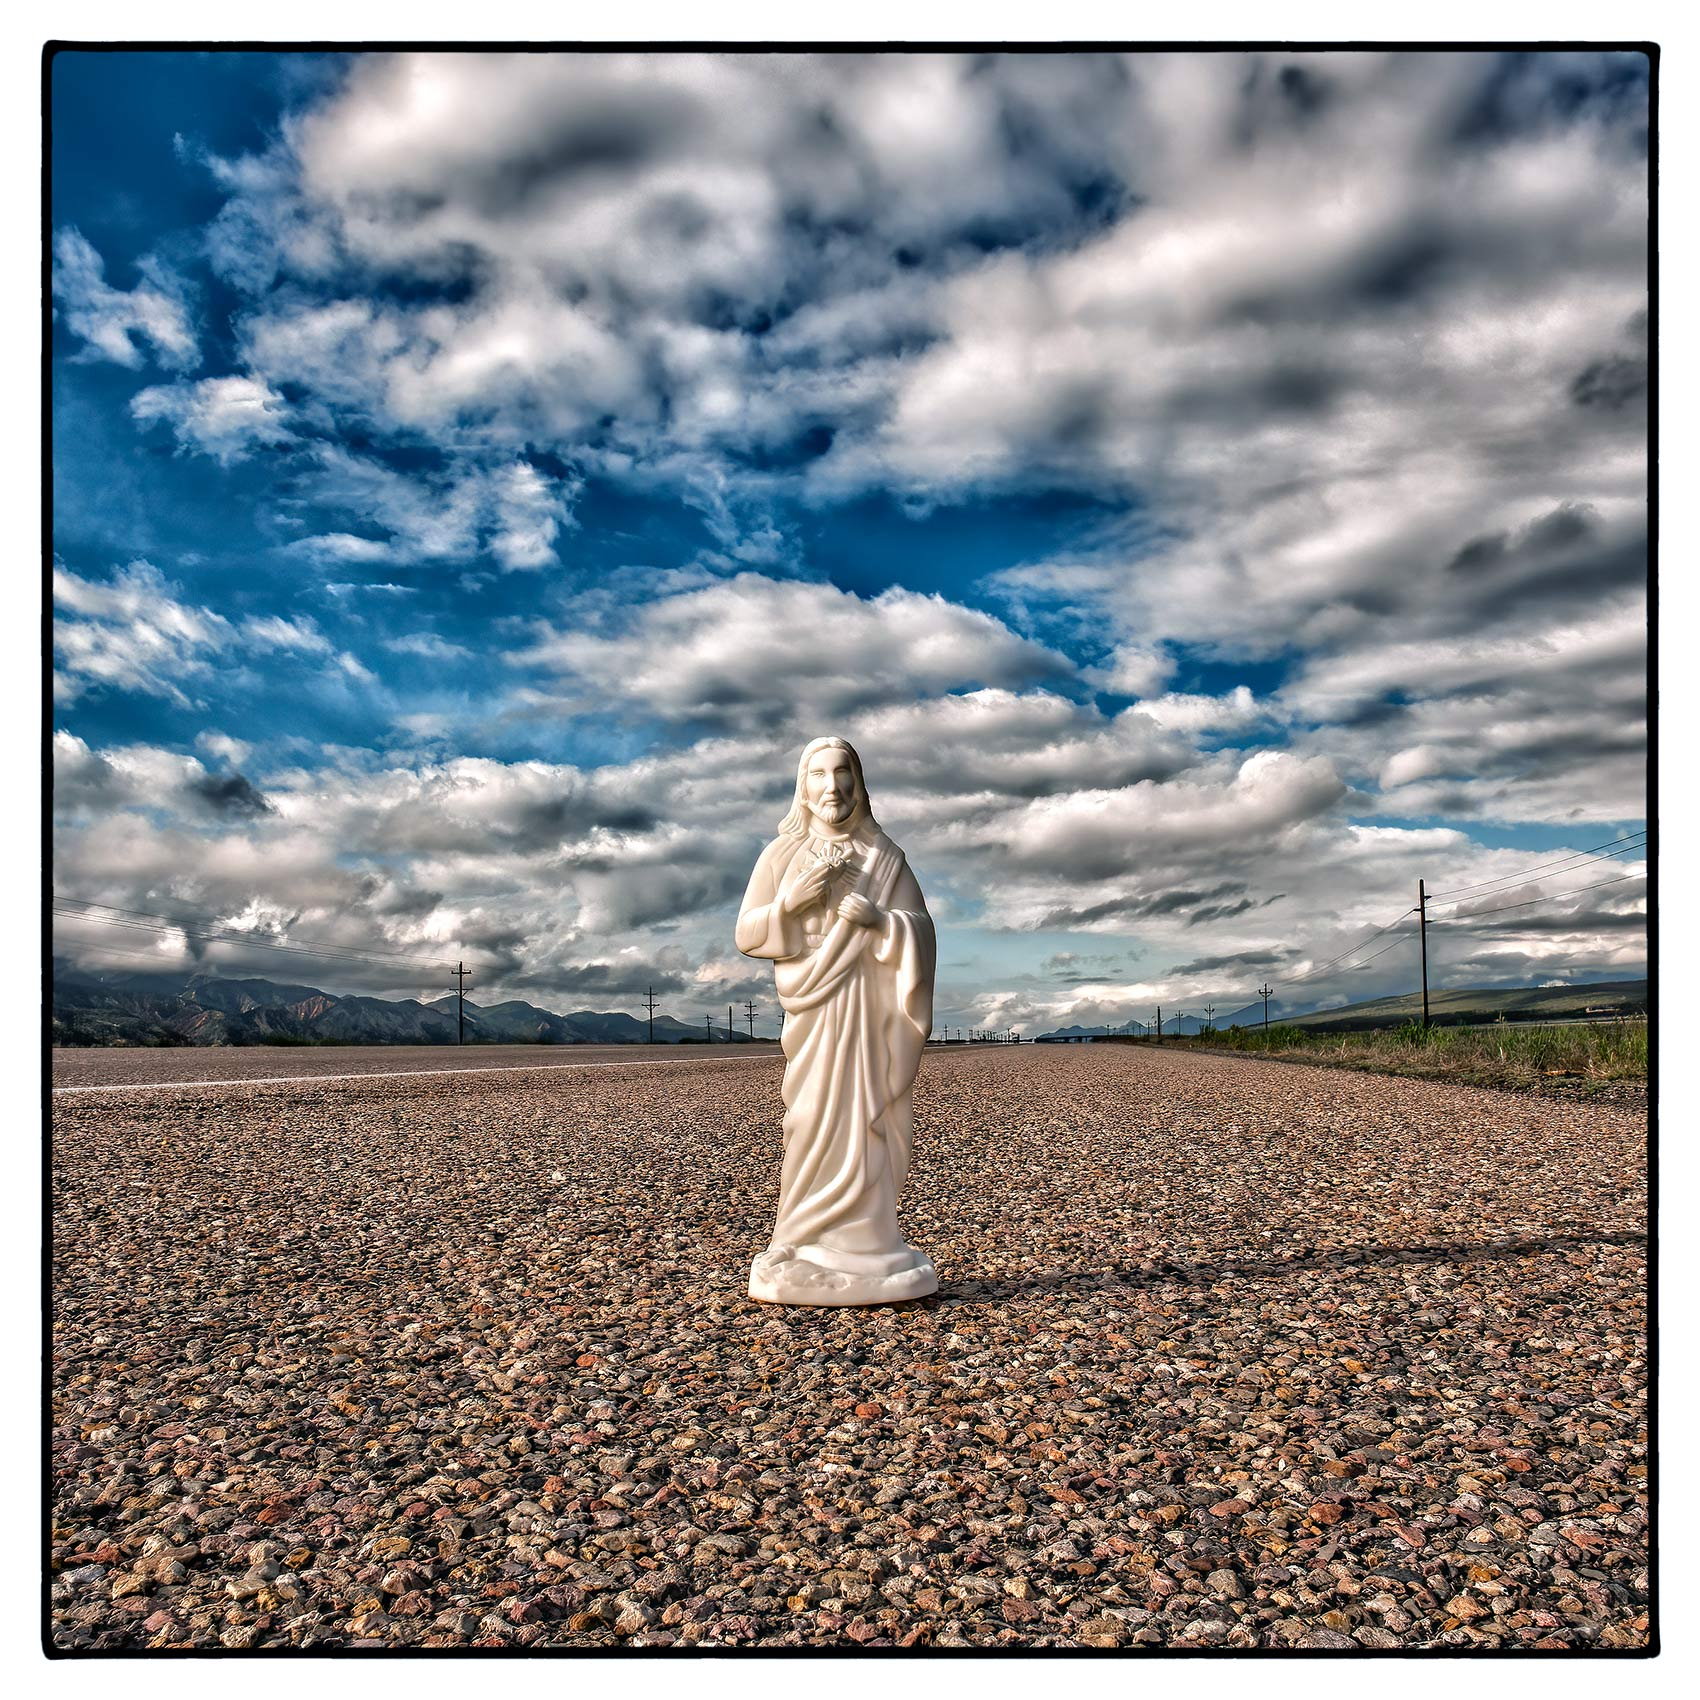 an-abandoned-statue-of-jesus-stands-by-the-side-of-a-highway-in-rural-nevada-usa